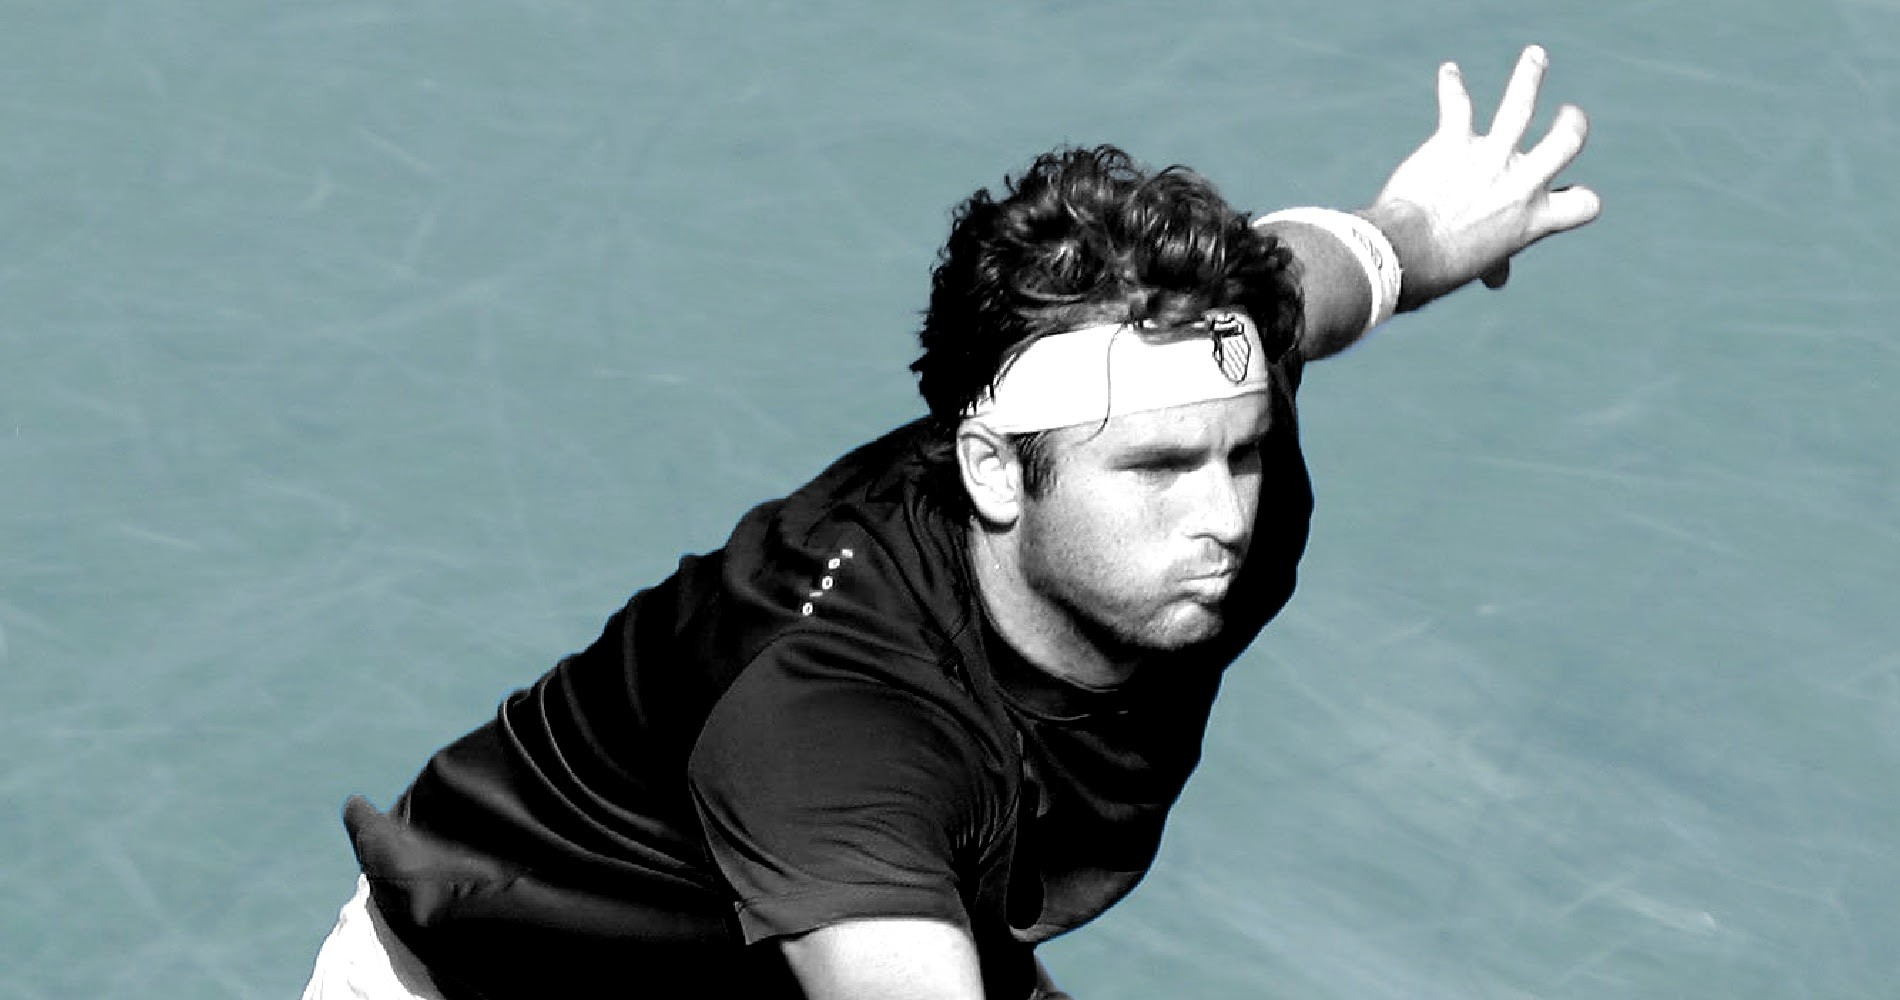 Mardy Fish, On this day 21.03.2021